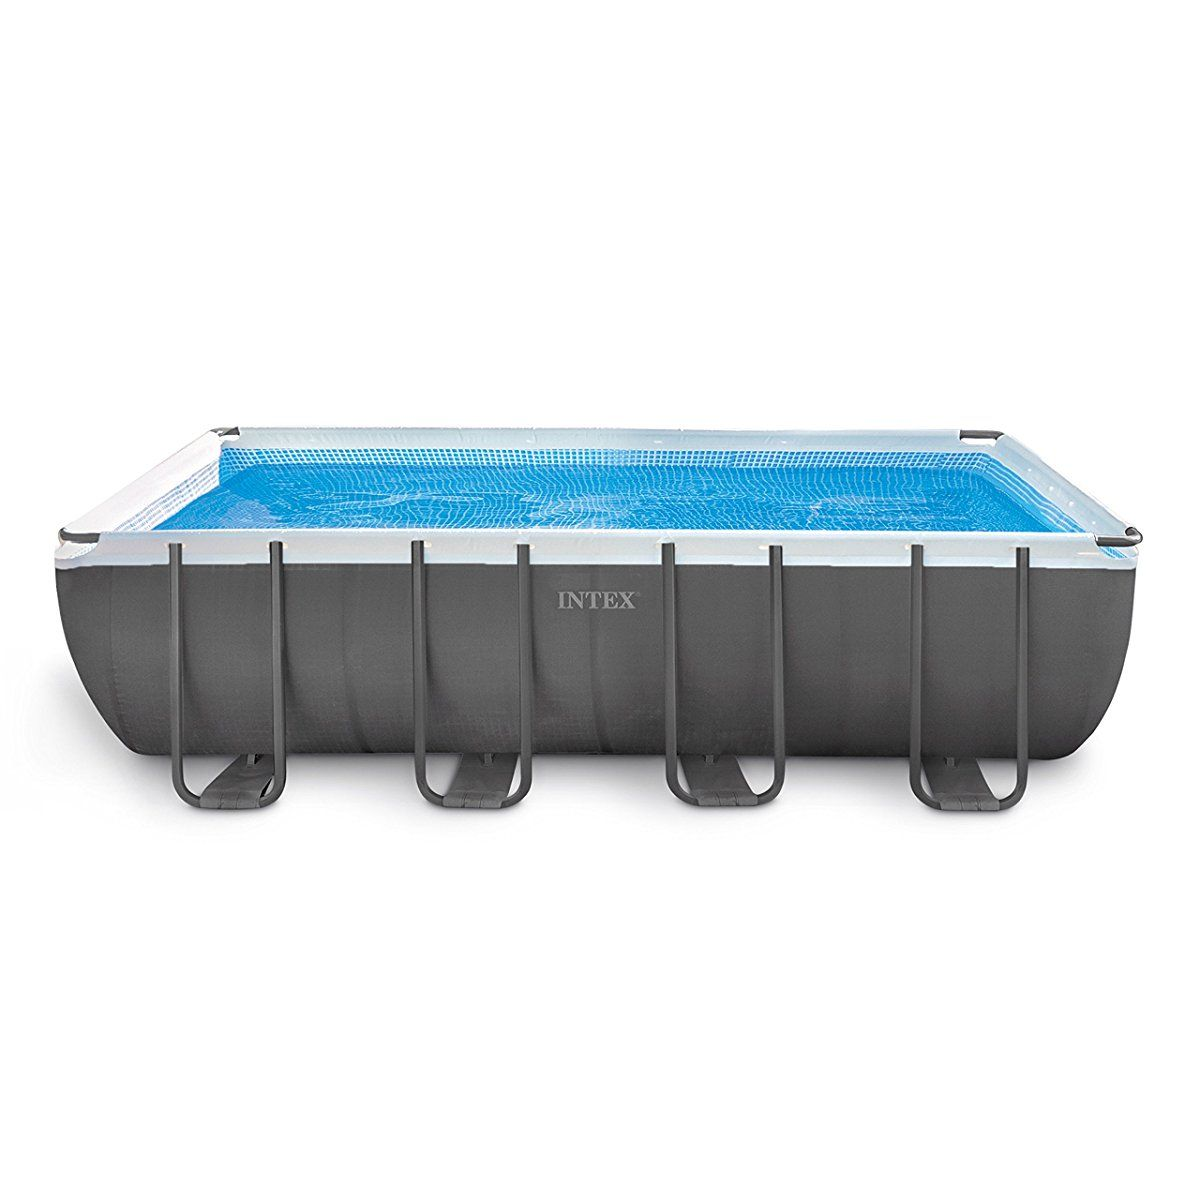 Intex 18ft X 9ft X 52in Ultra Frame Rectangular Pool Set With Sand Filter Pump Ladder Ground Cloth Pool Cover Pool Supplies Best Above Ground Pool Above Ground Swimming Pools